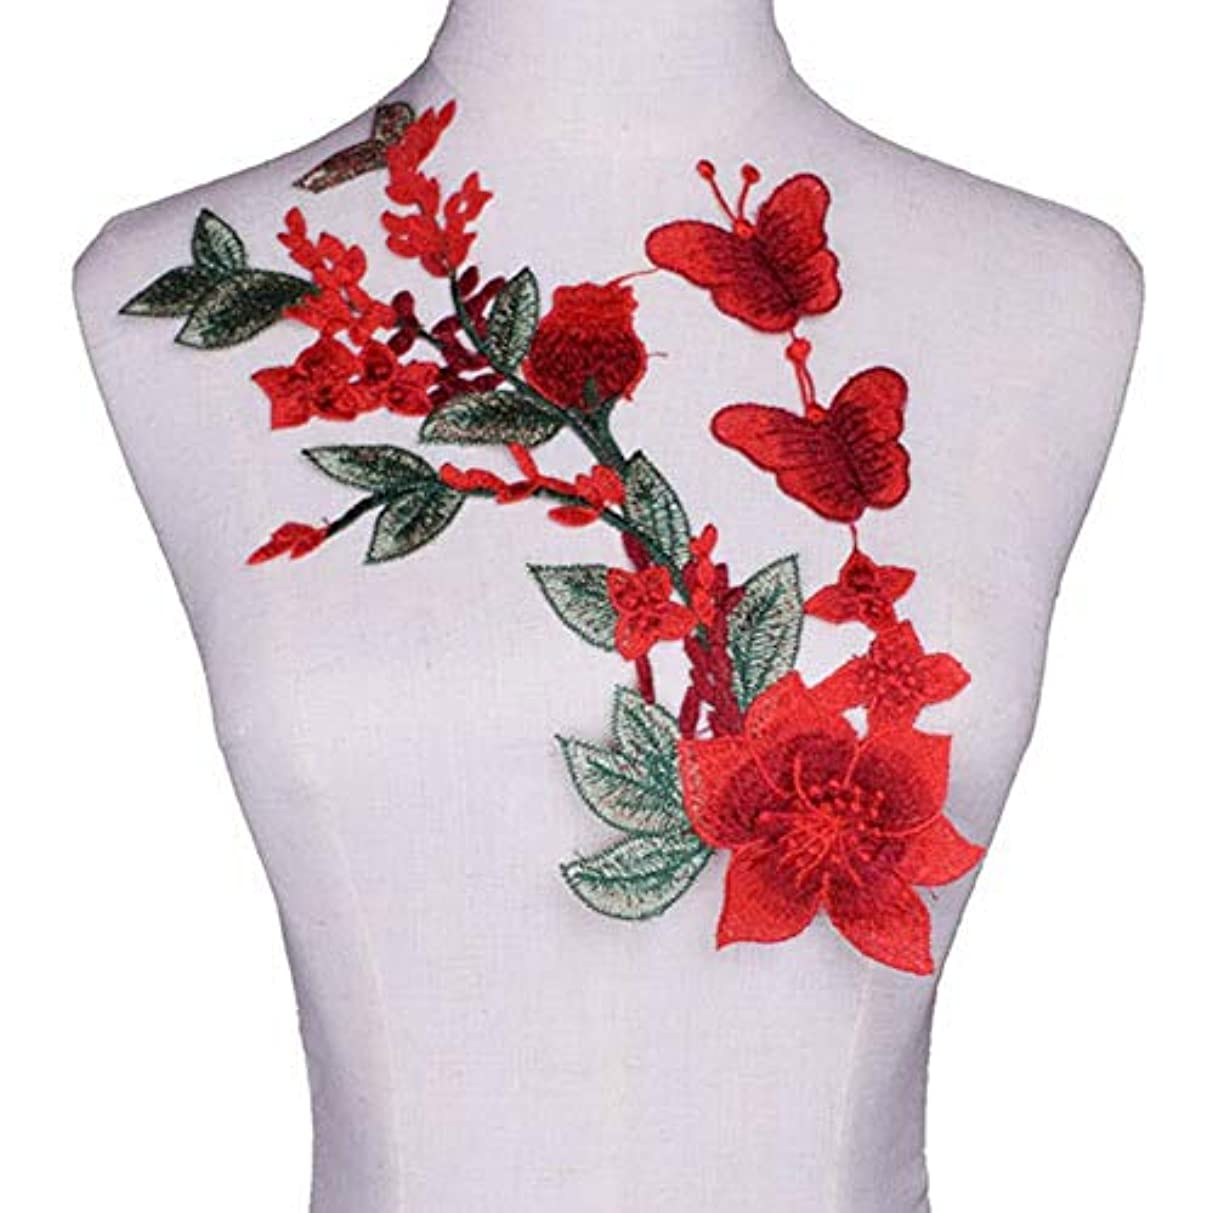 Red Flower Floral Embroidered Lace Neckline DIY Collar Trim Clothes Sewing Applique Embroidery Edge for Sewing Supplies Crafts (9#)